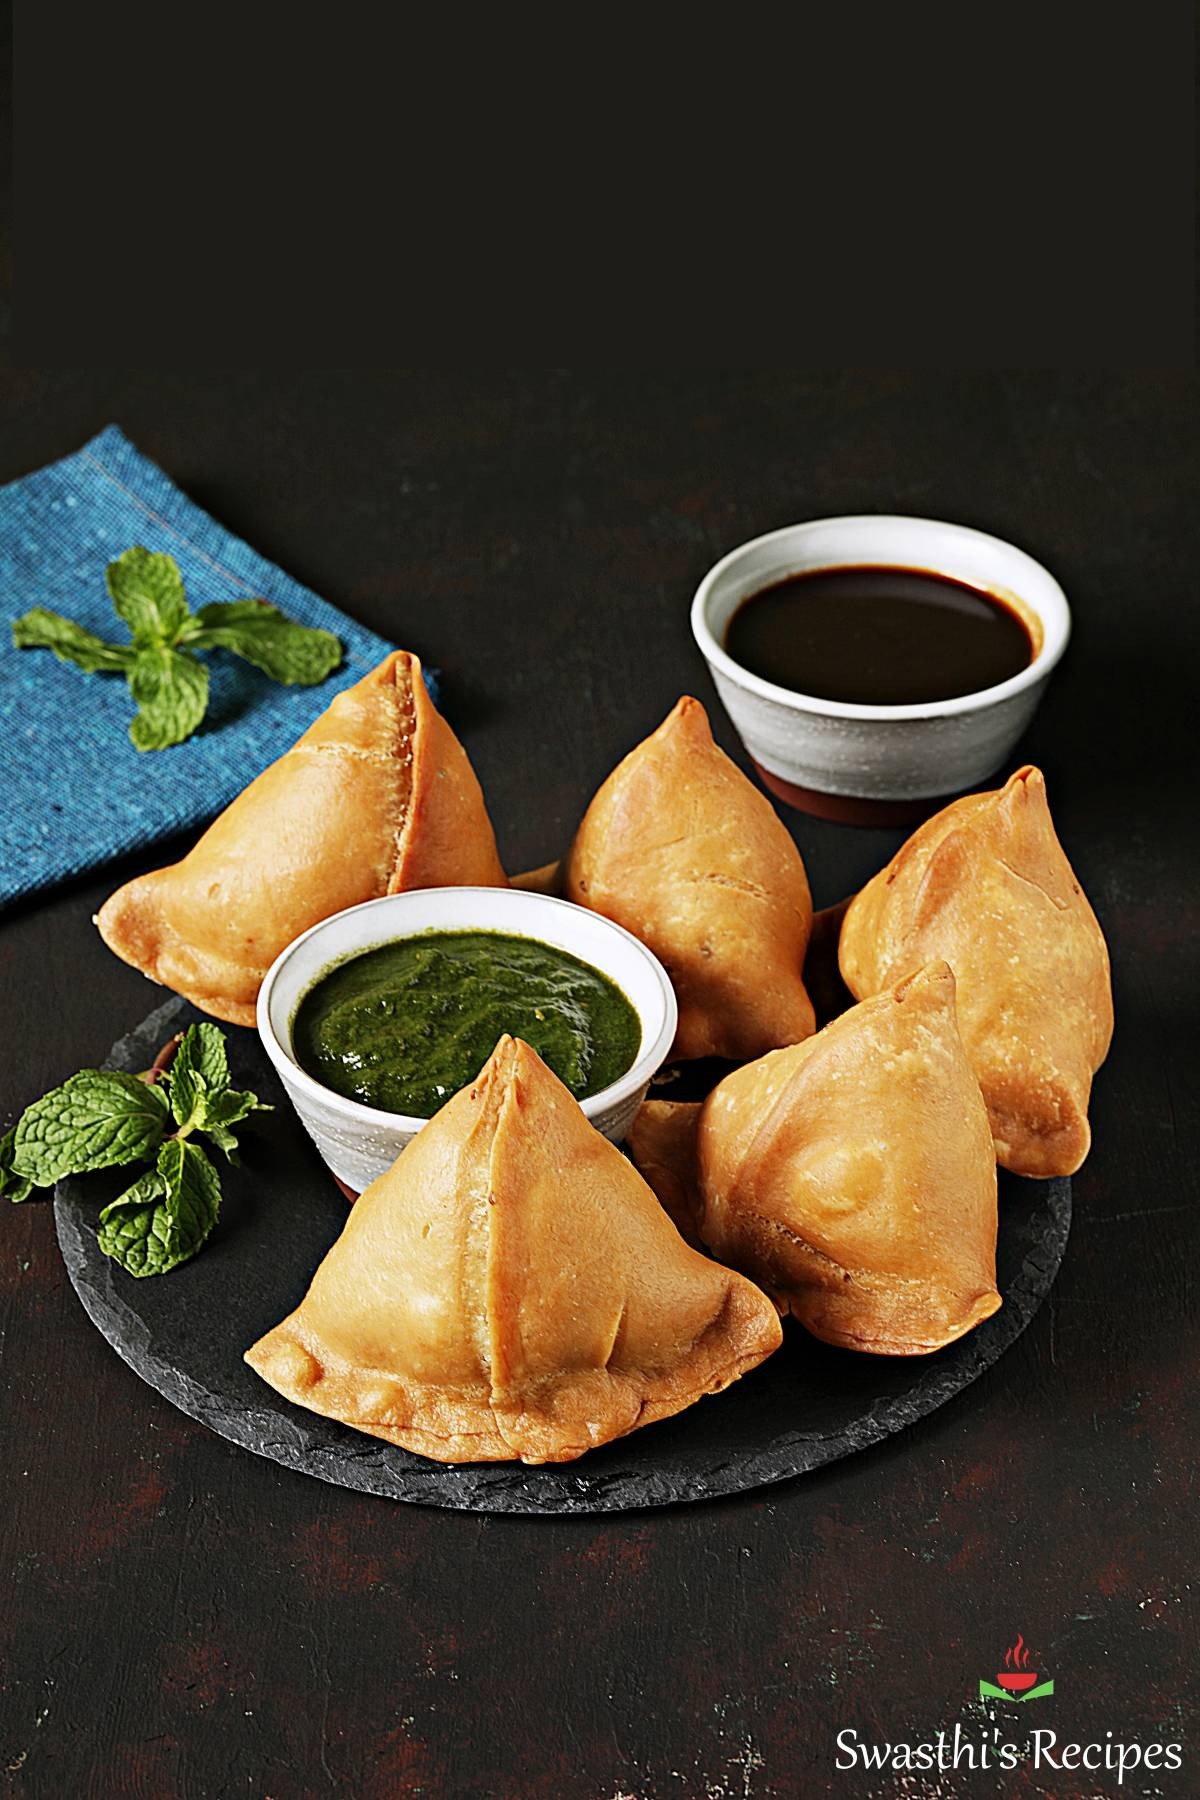 samosa made with spiced potato stuffing, served with green chutney